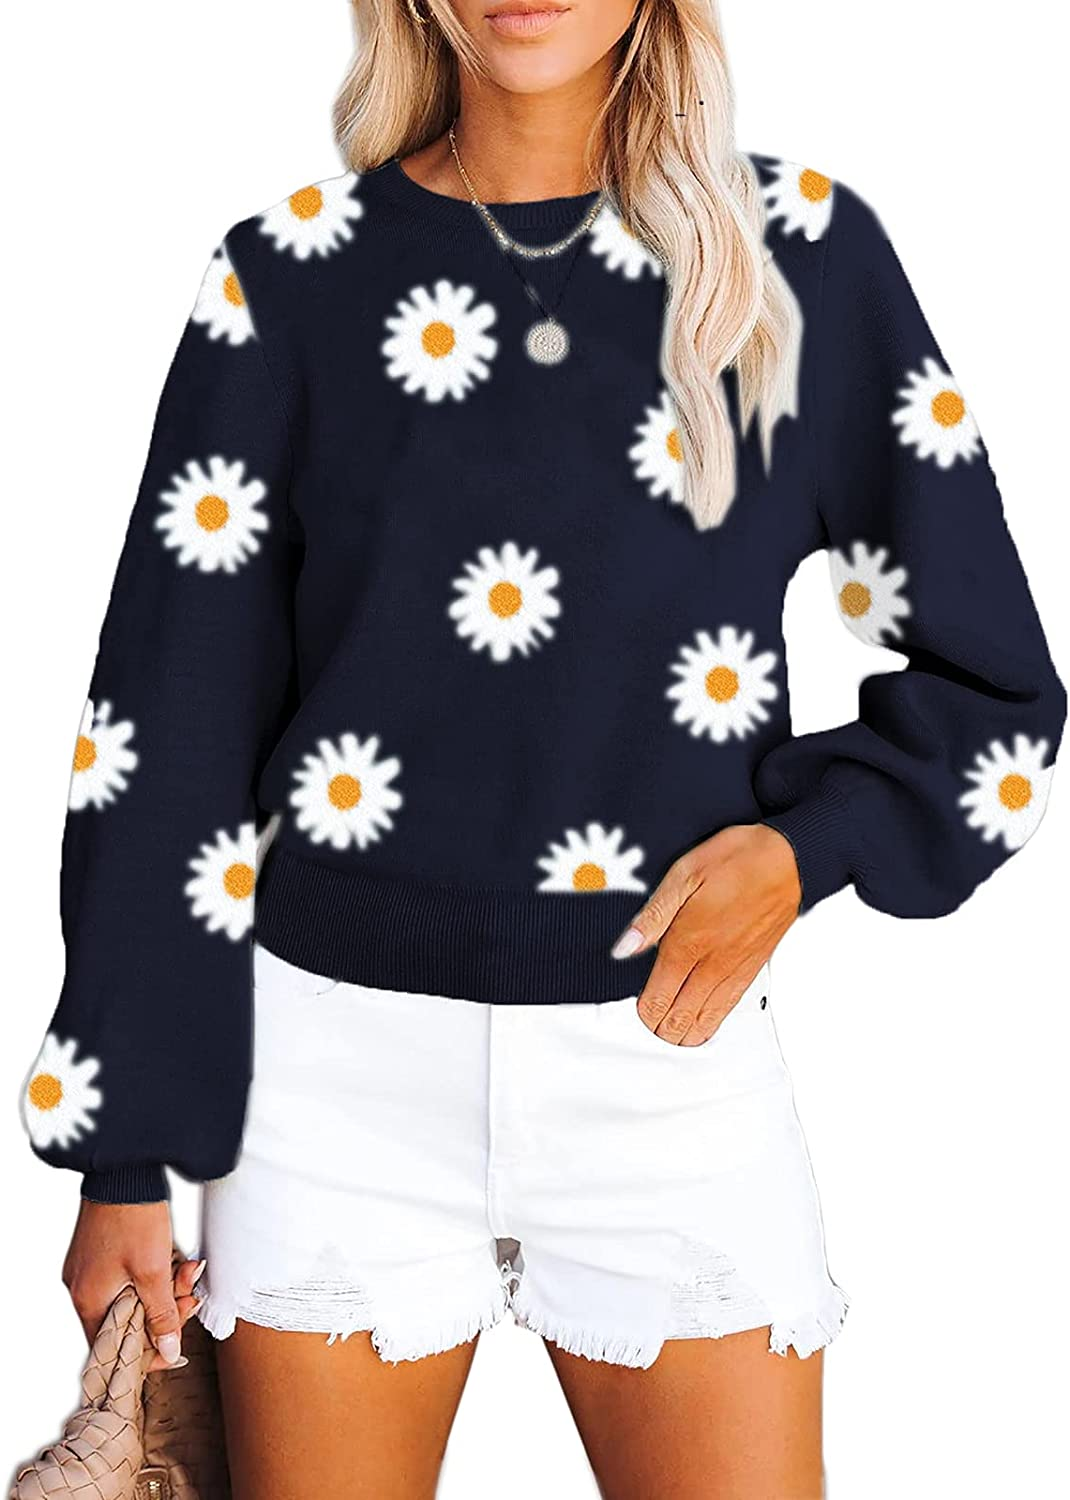 Dellytop Womens Daisy Knit Sweaters Crewneck Long Balloon Sleeve Casual Loose Solid Pullover Jumper Tops